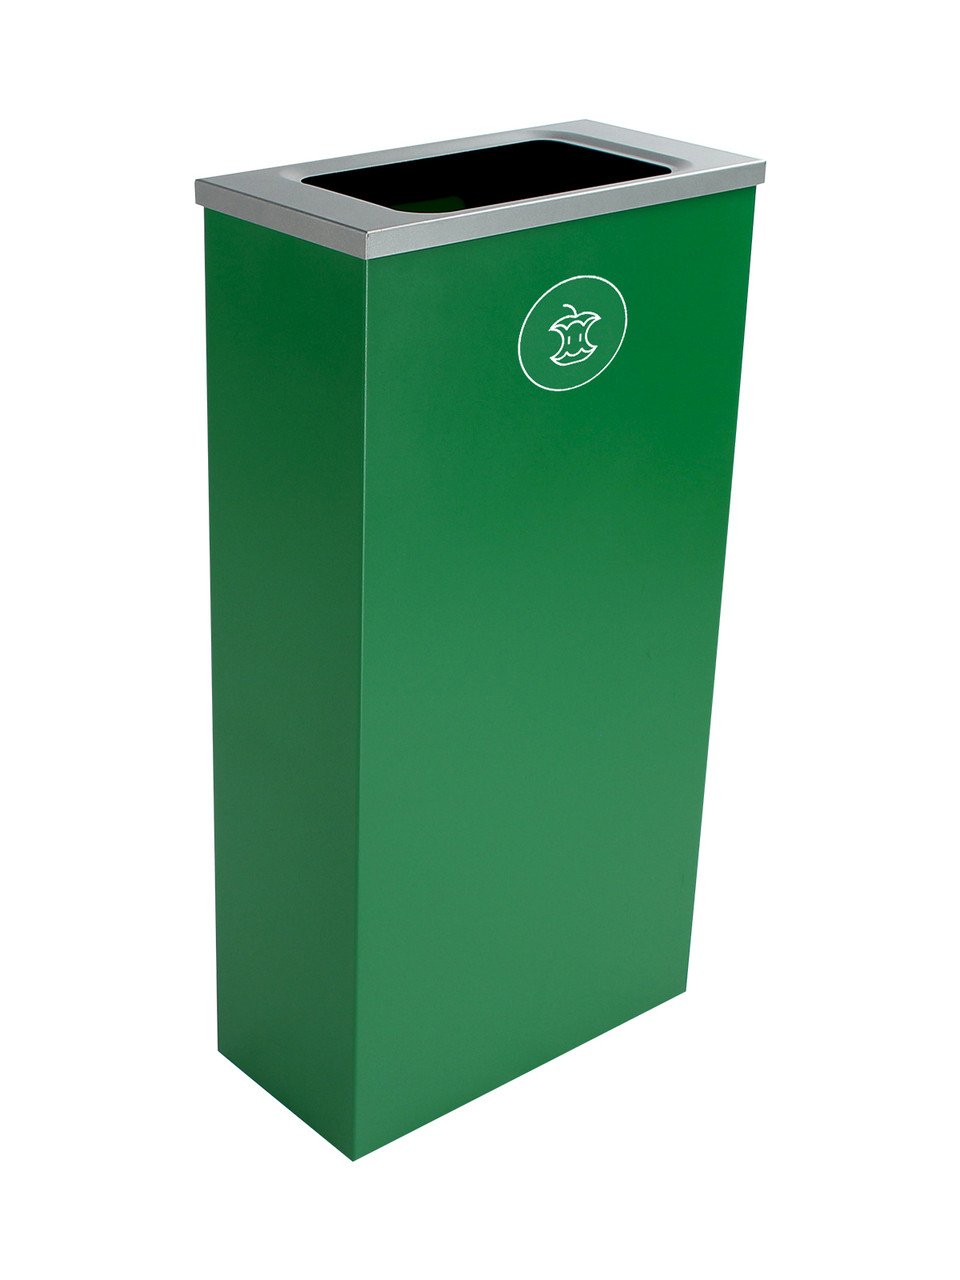 10 Gallon Steel Spectrum Slim Compost Bin Green 8107070-4